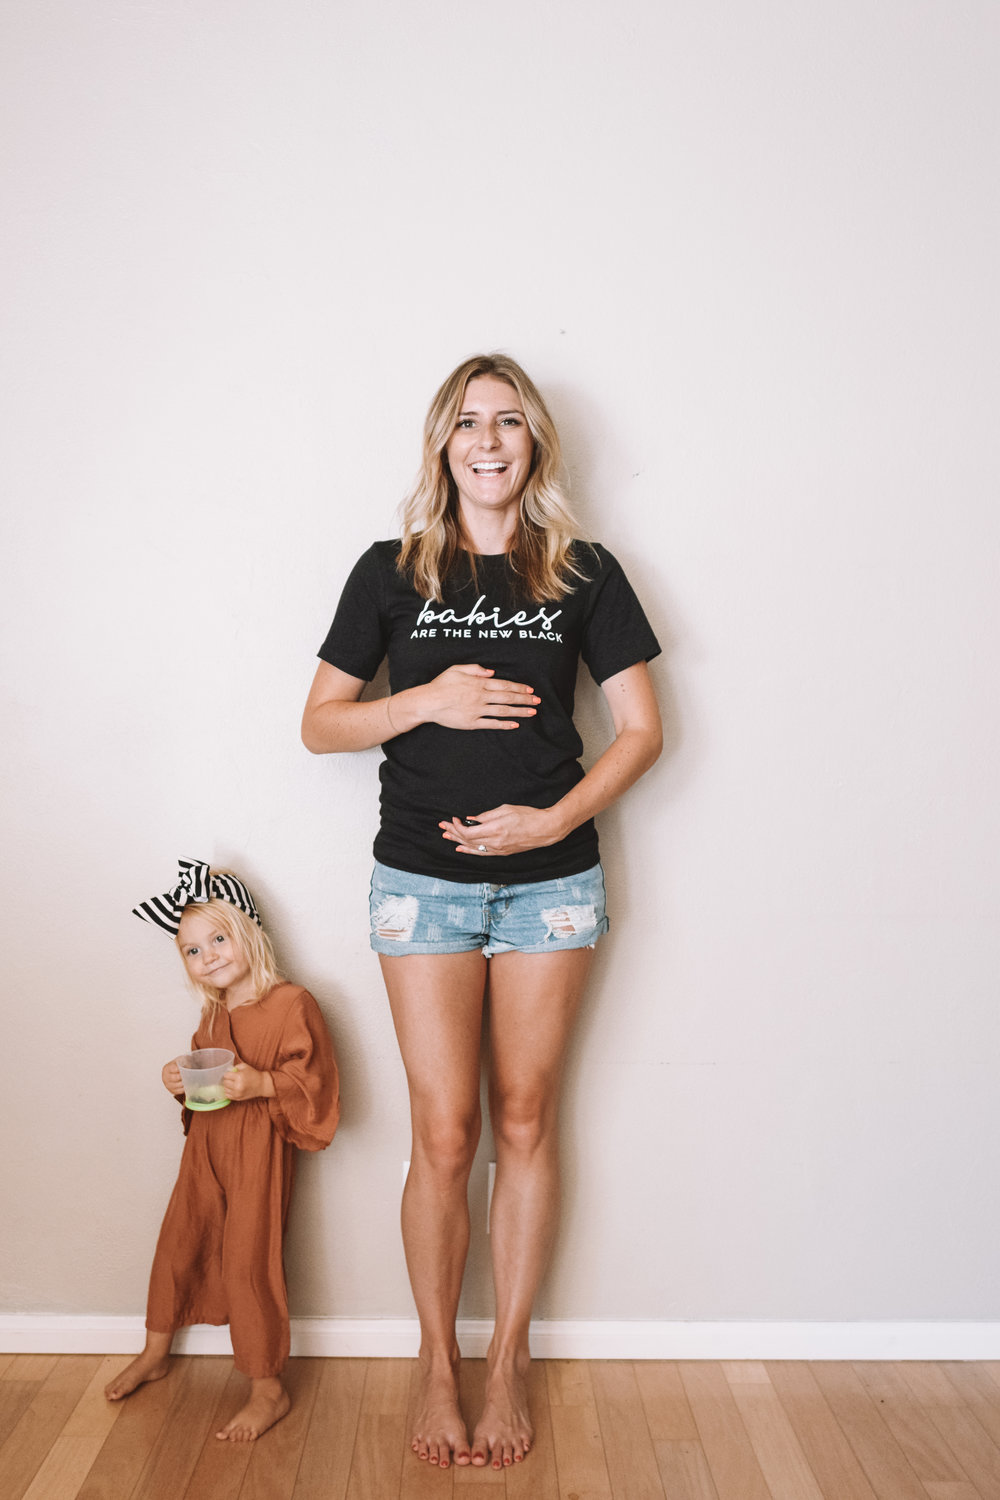 Pregnant Belly Week 10 -- Funny Pregnancy Shirts -- The Overwhelmed Mommy Blogger